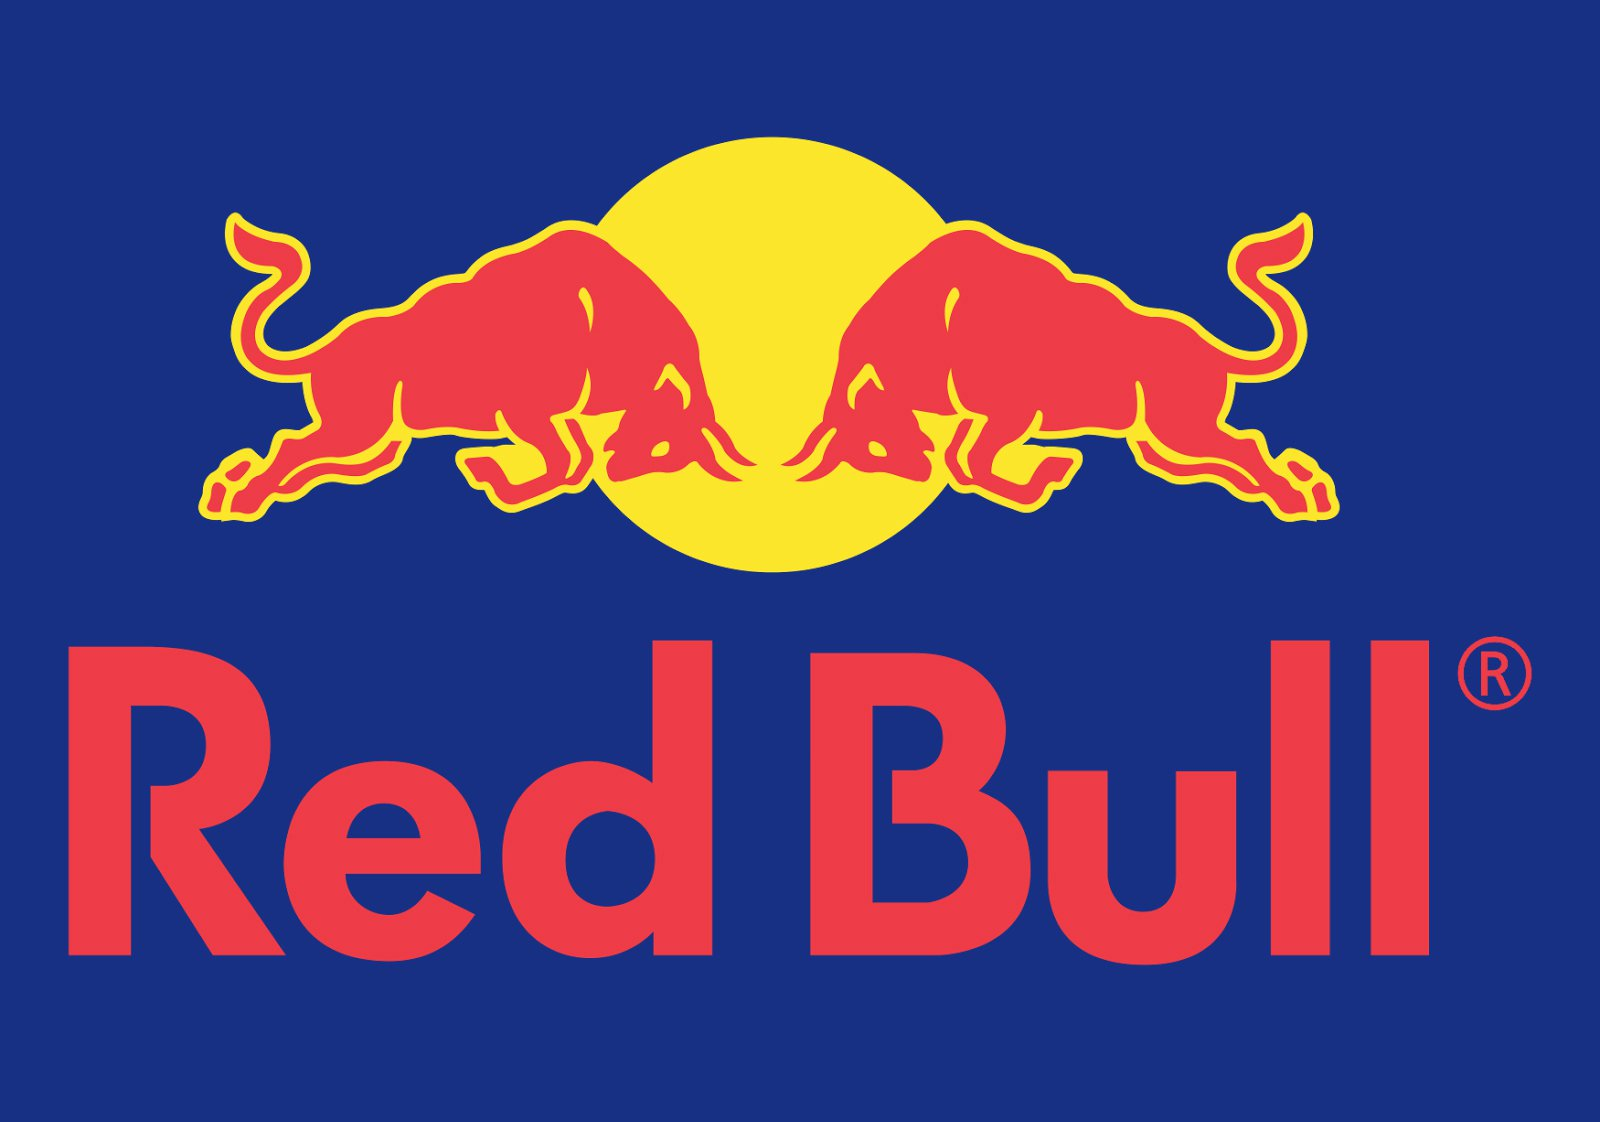 Meaning Red Bull logo and symbol.